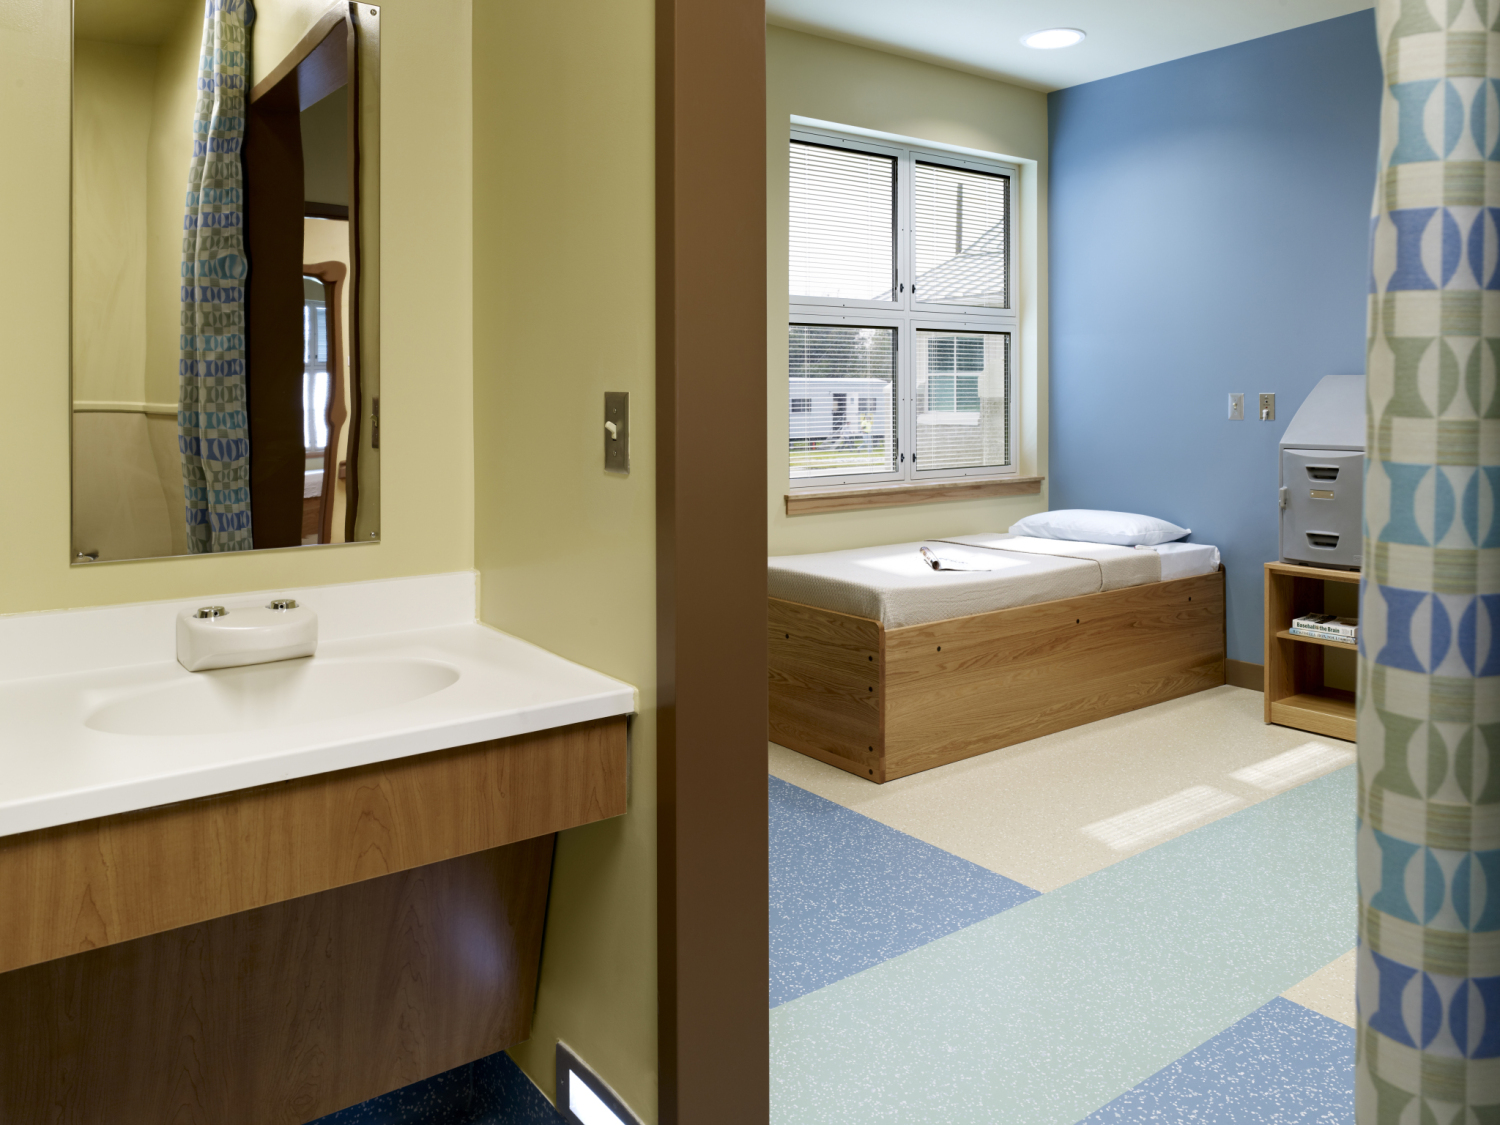 Hospital room design requirements